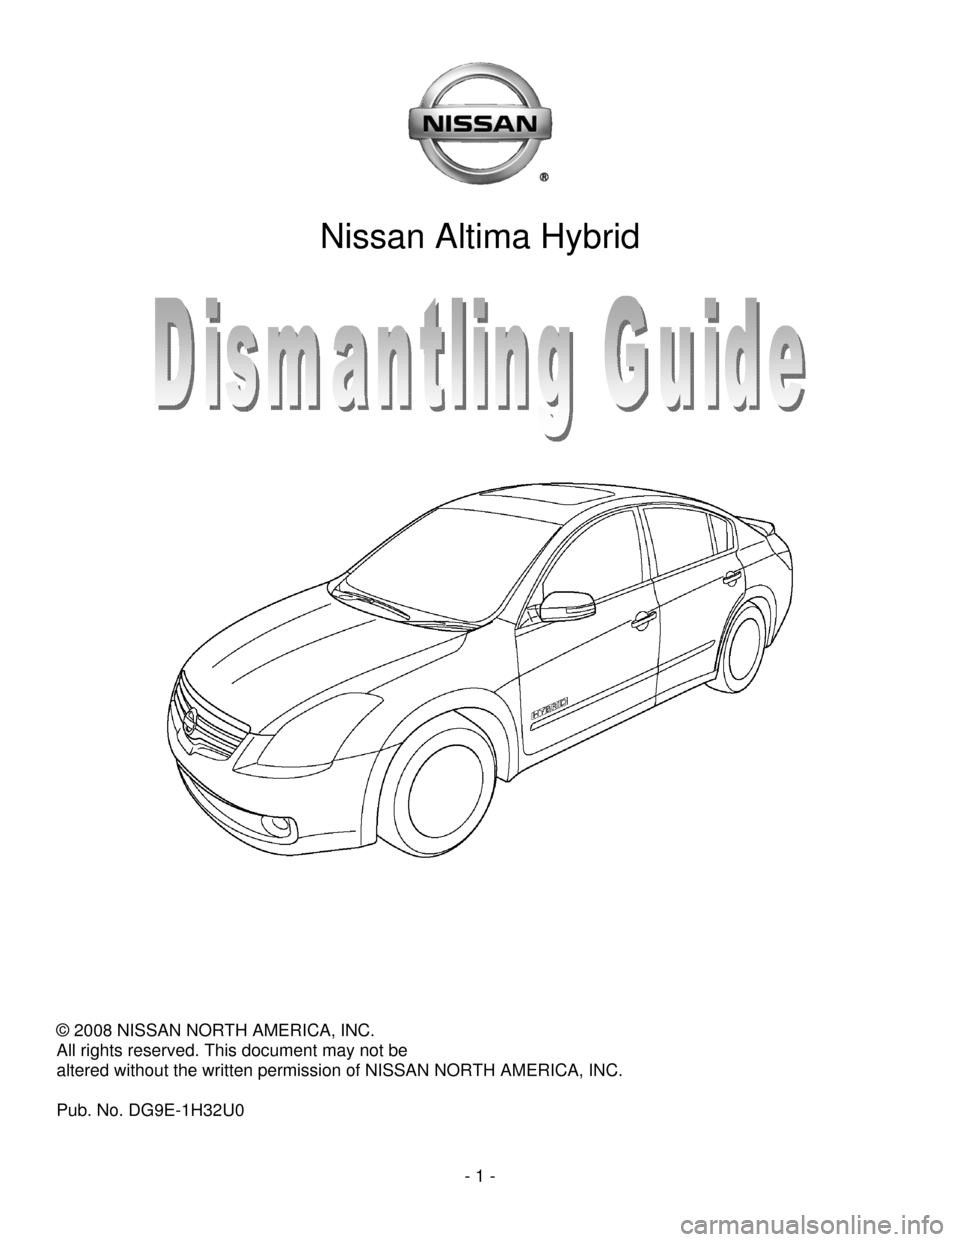 NISSAN ALTIMA HYBRID 2009 L32A / 4.G Dismantling Guide, Page 1